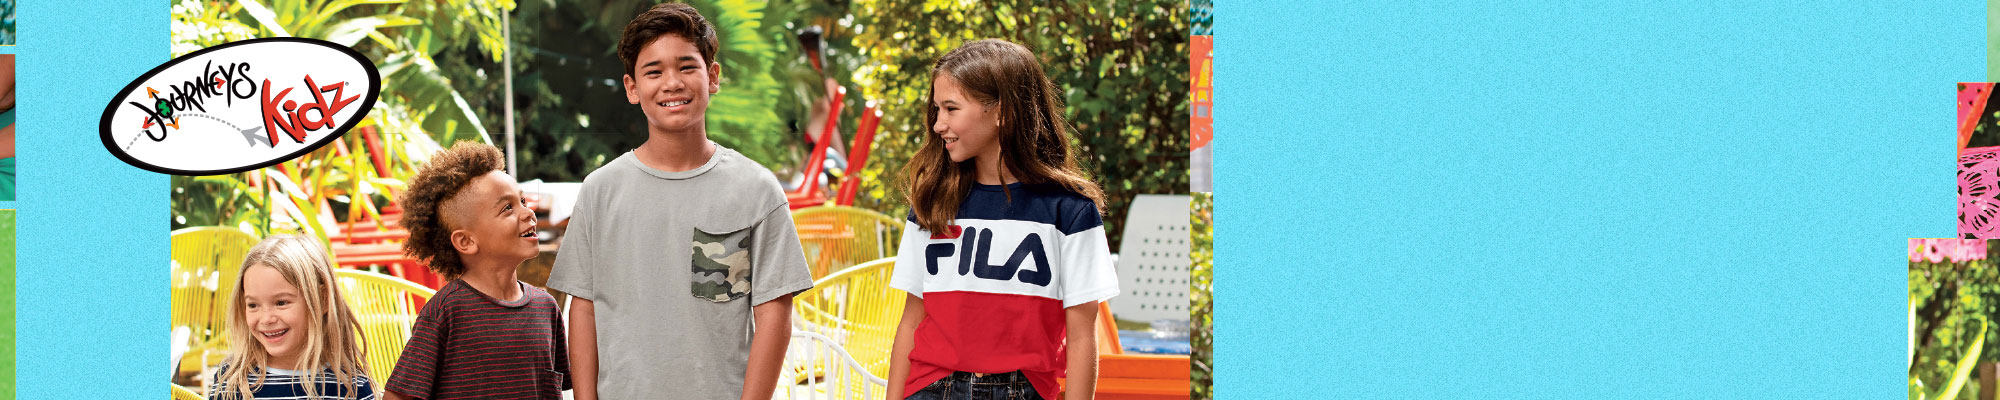 Shop Journeys Kidz